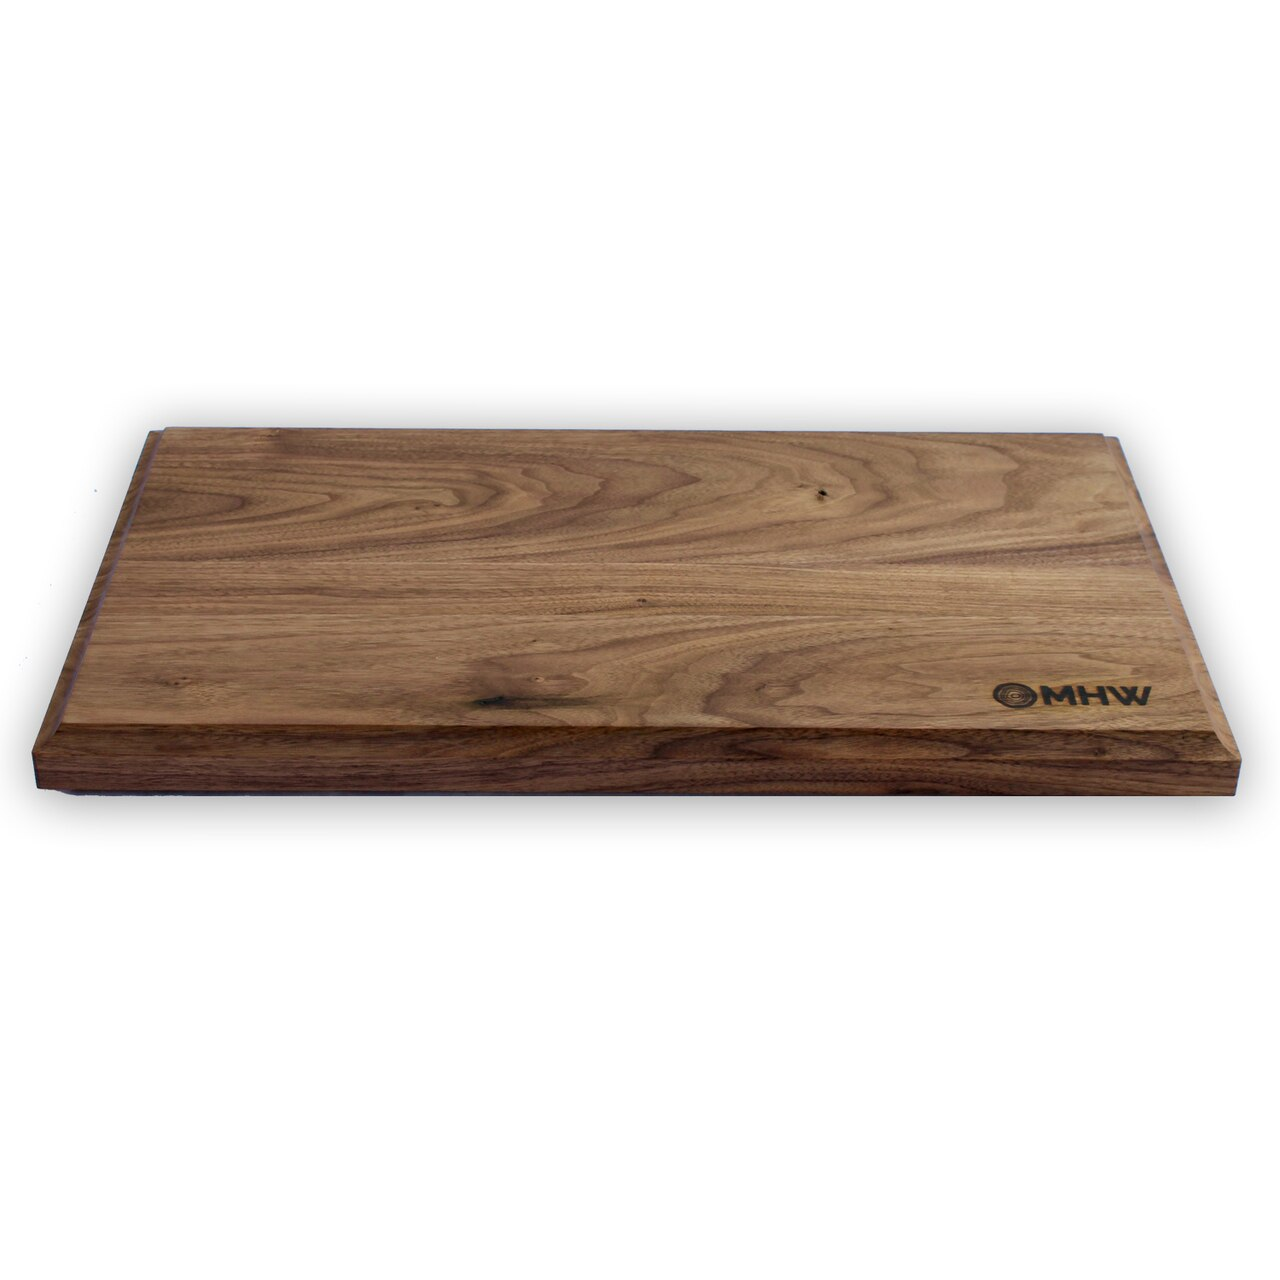 12x20x1.5 Thick Walnut Wood Cutting Board - wFREE Board Butter!